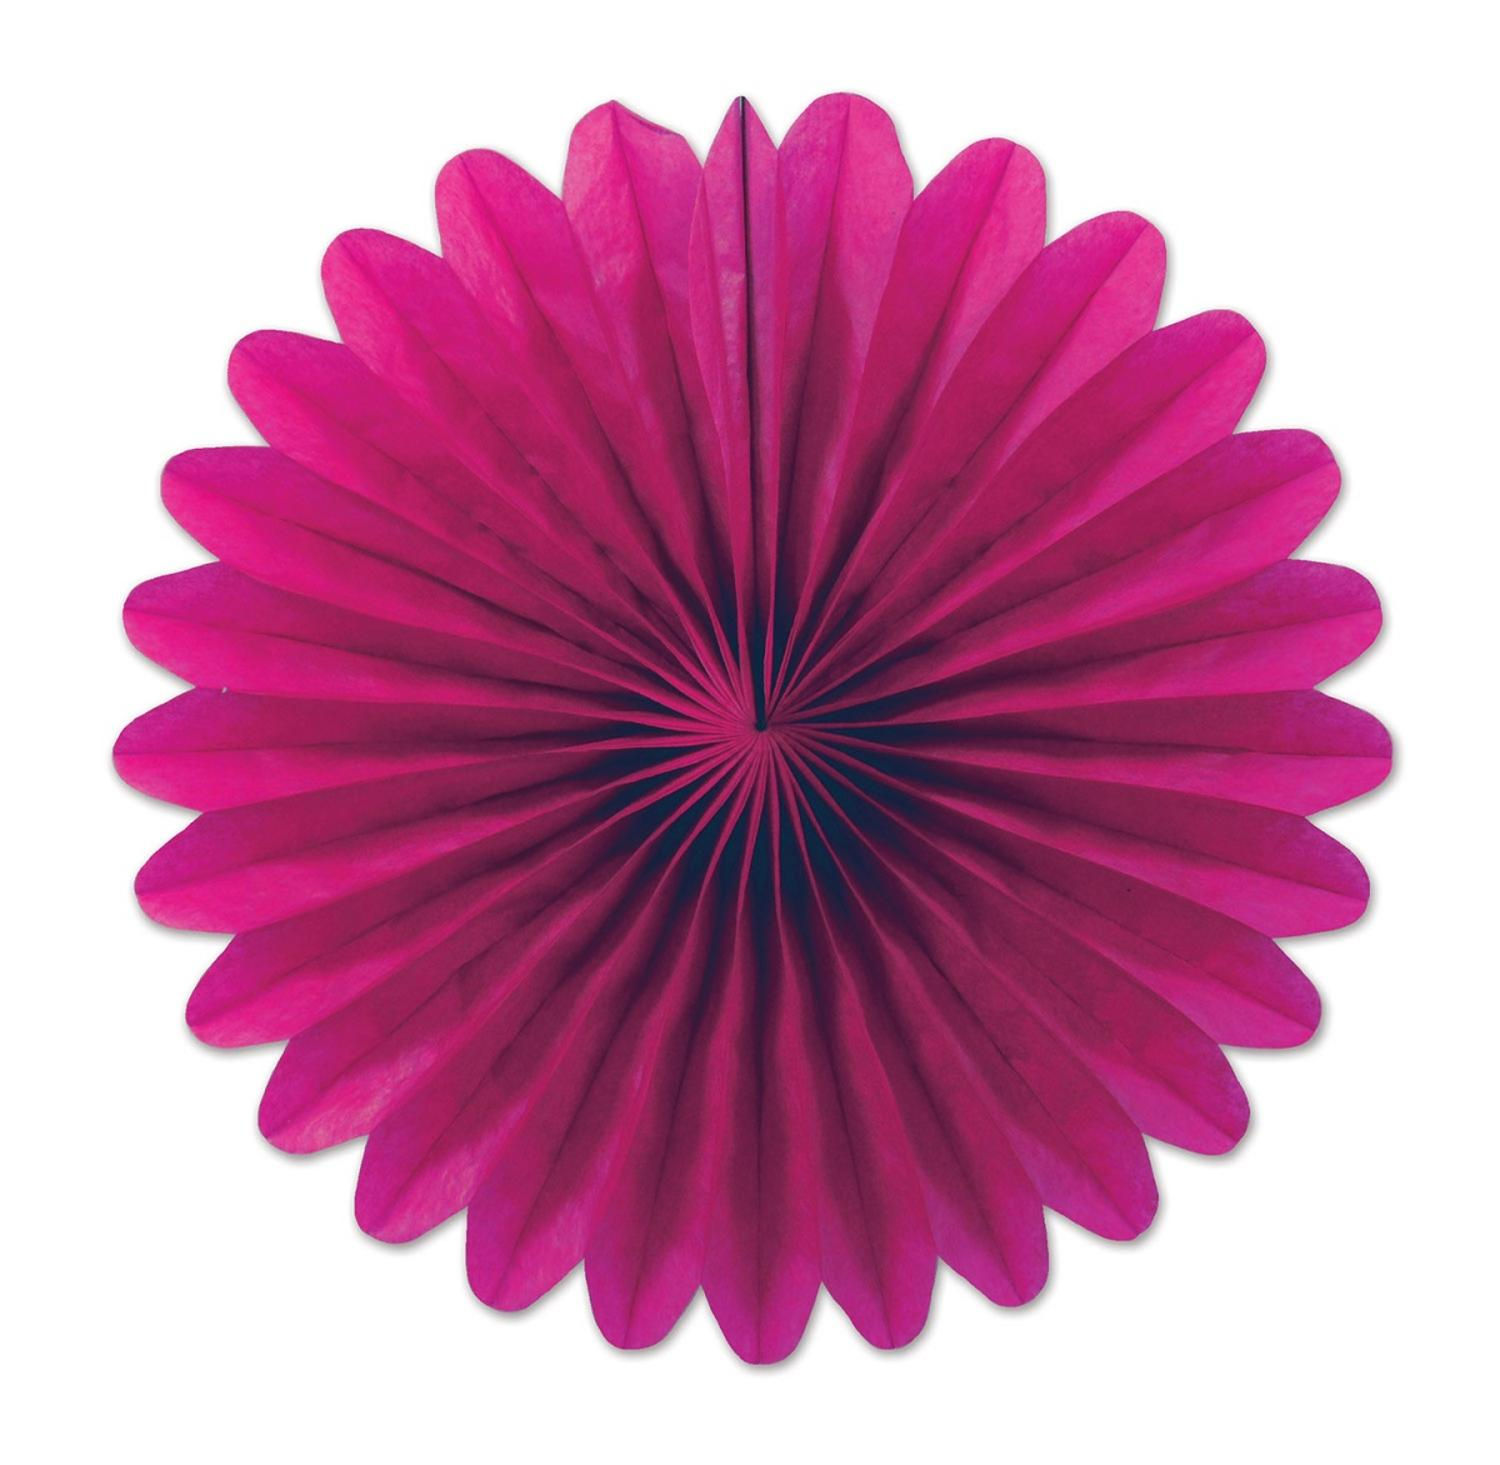 Club Pack of 72 Cerise Pink Miniature Tissue Paper Fan Hanging Party Decorations 6""